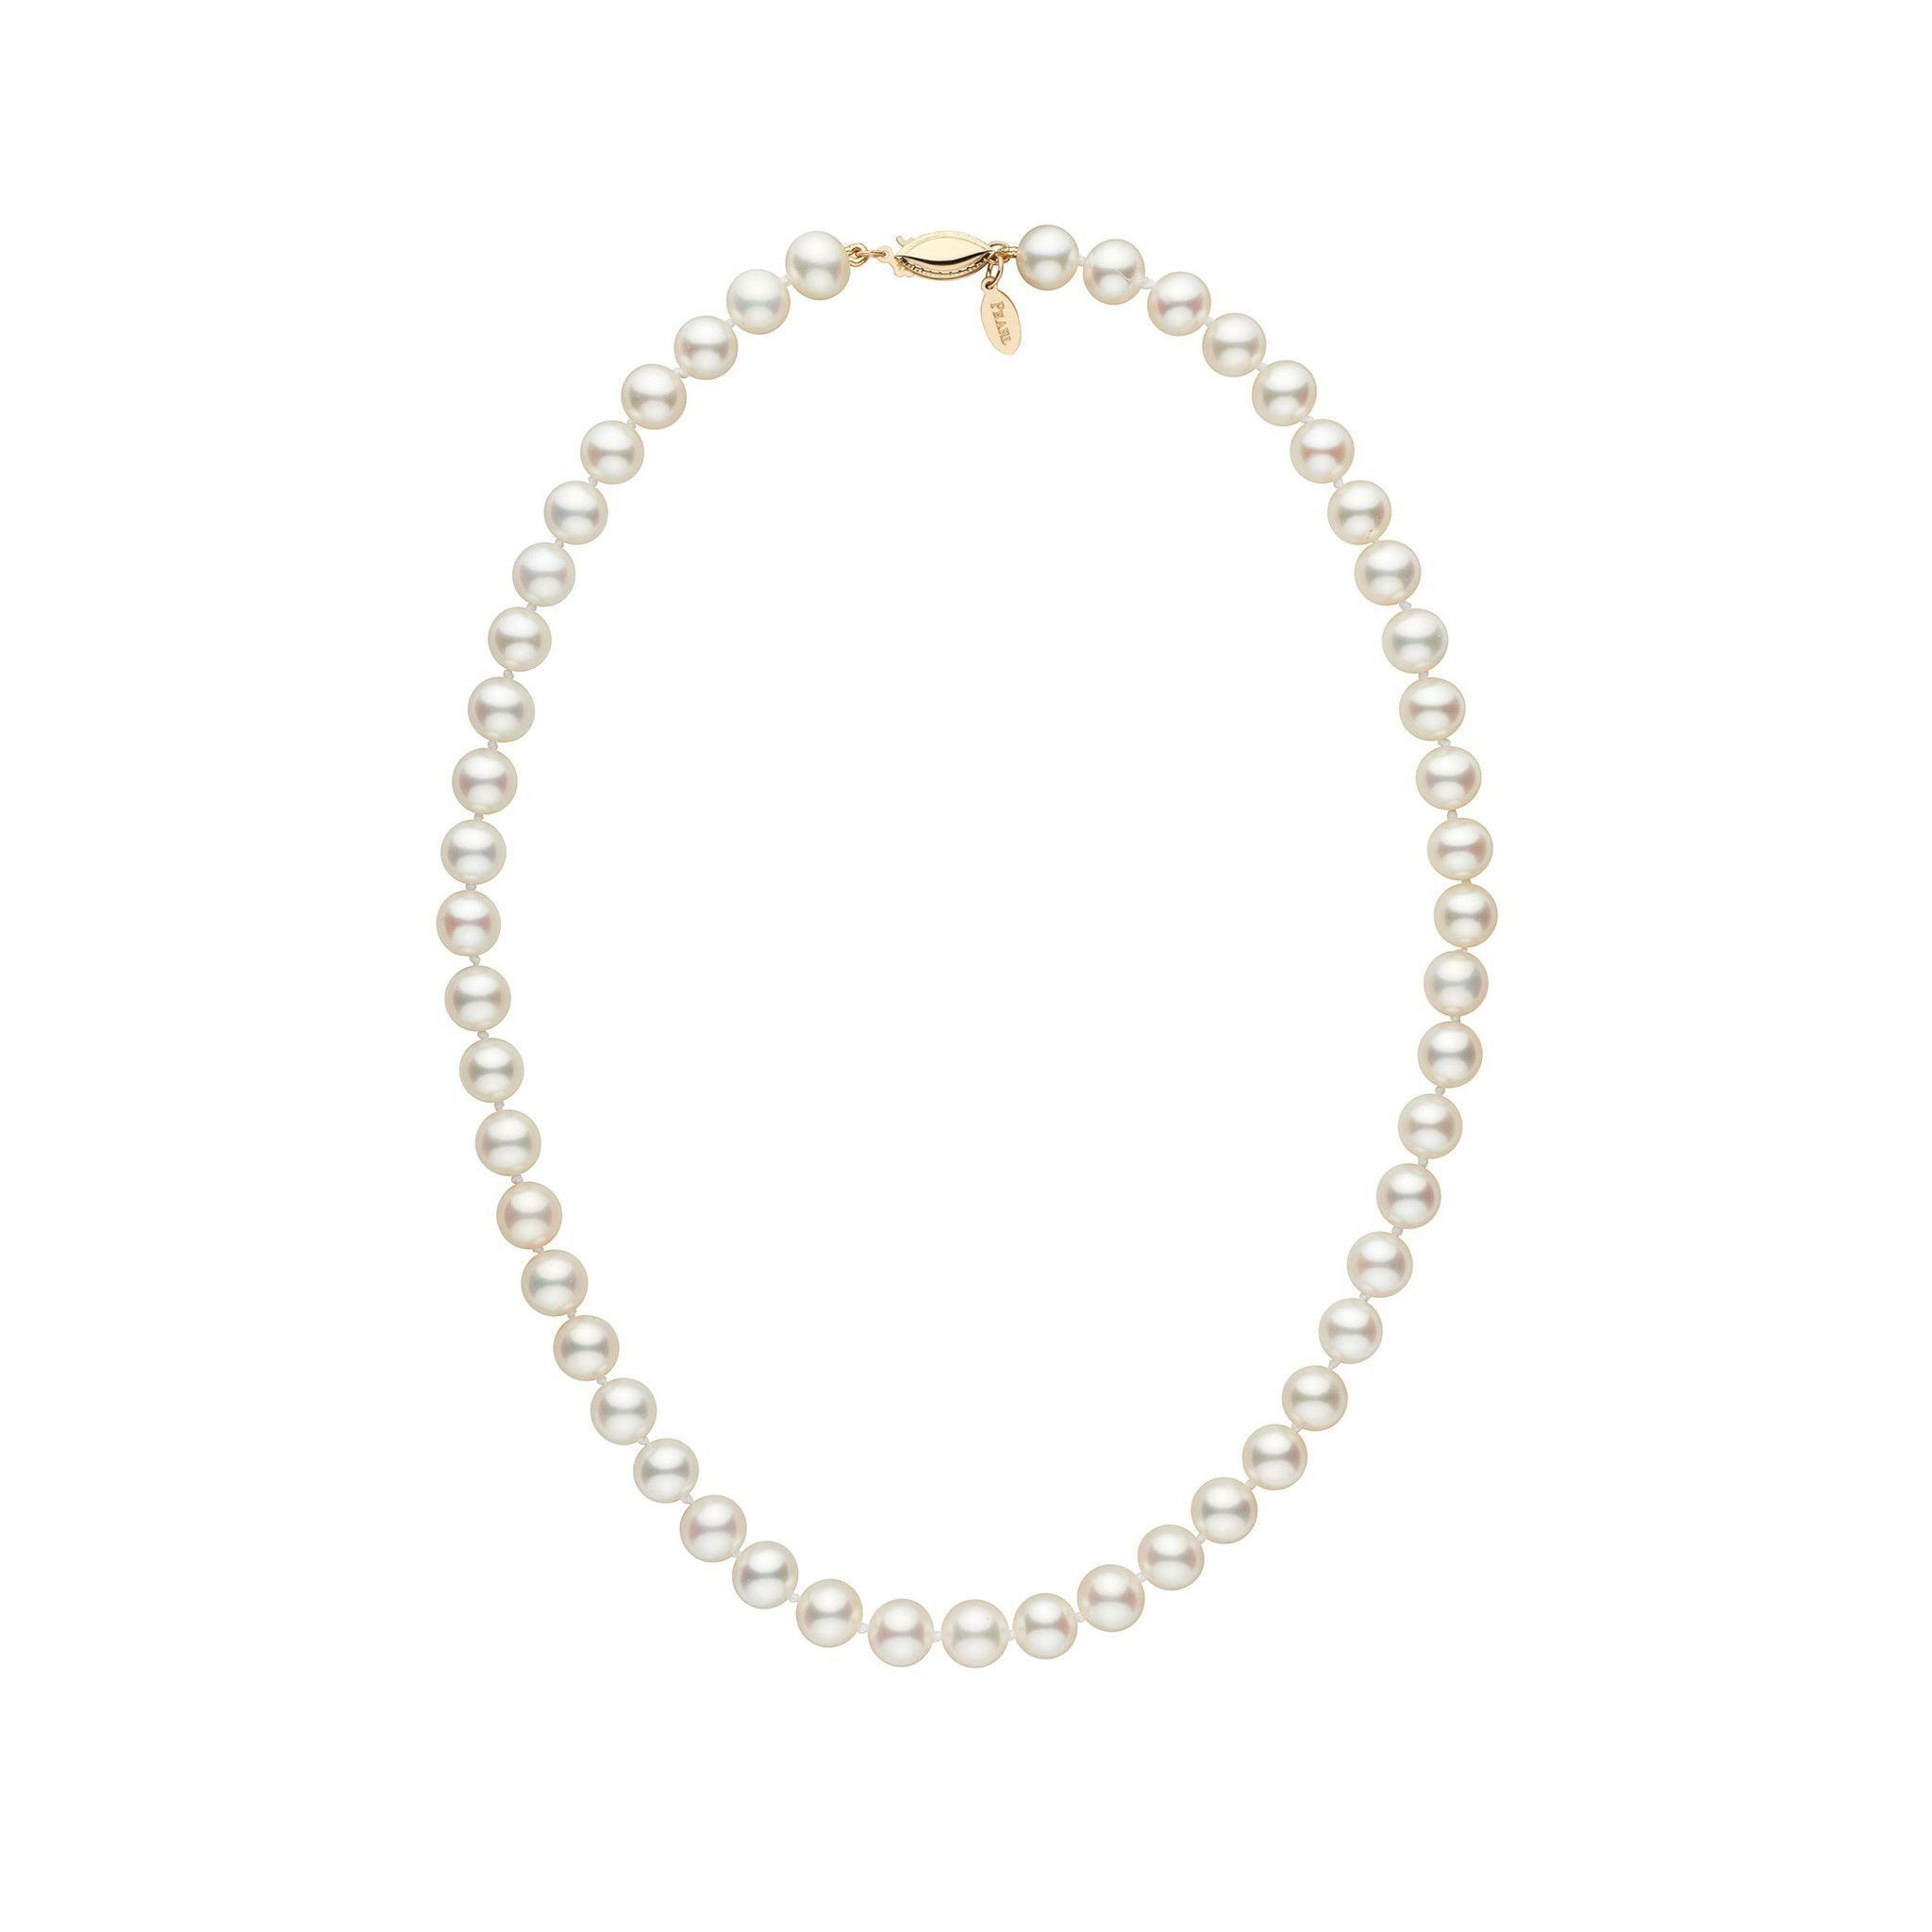 7.5-8.0 mm 16 Inch White Freshadama Freshwater Pearl Necklace